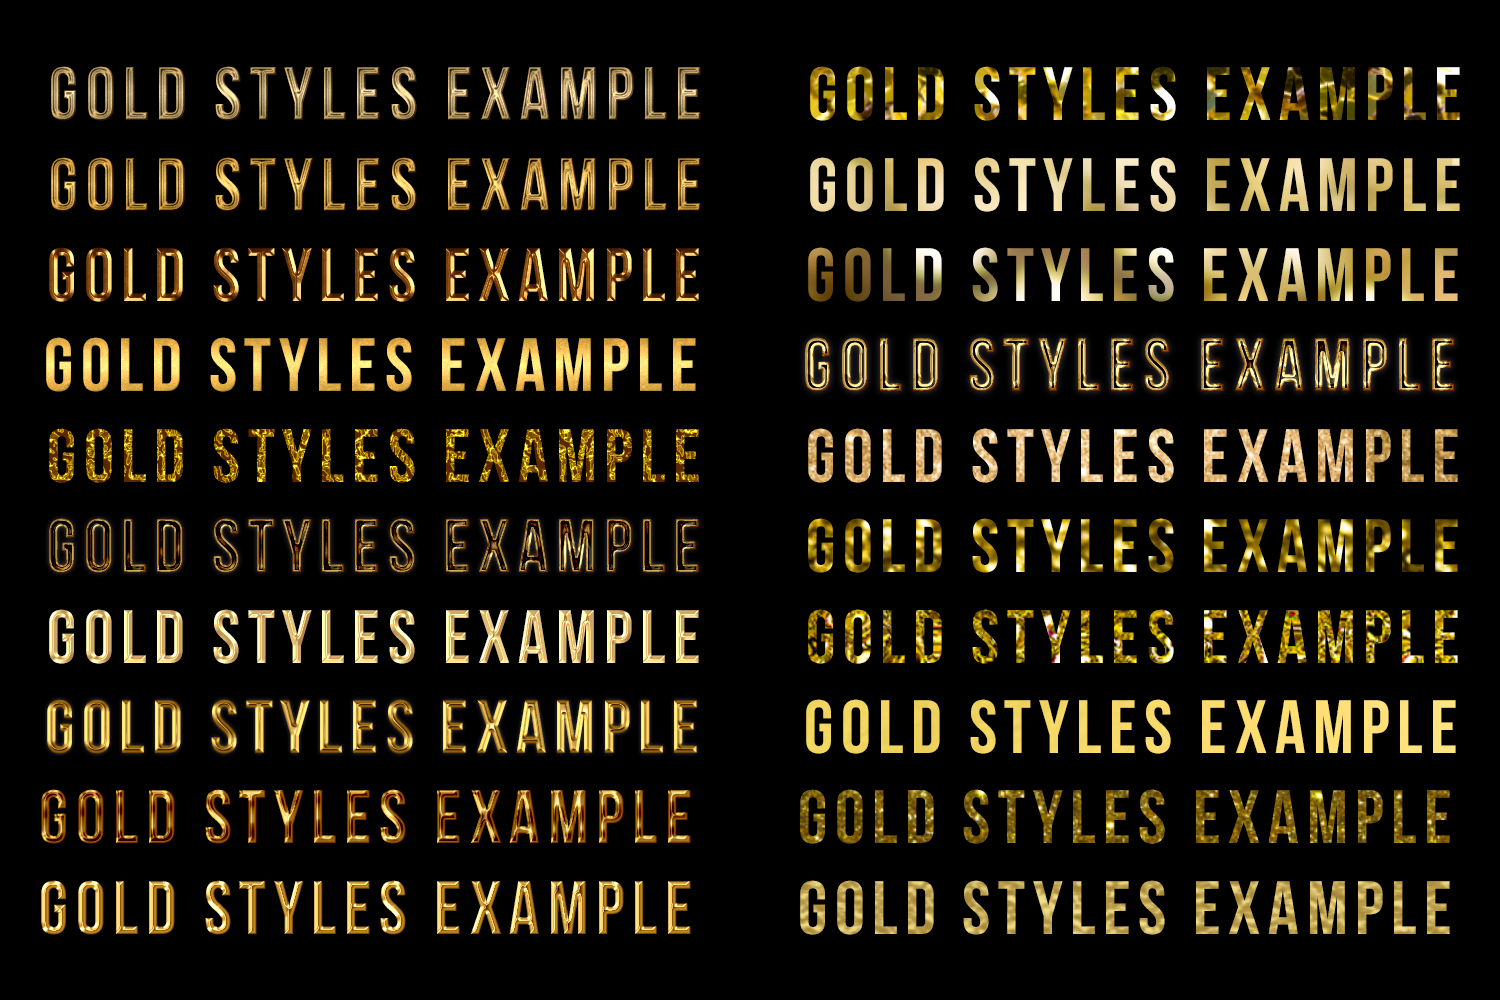 55 Photoshop Text Effects, Gold Foil Effect, Gold Stamp, Embossed Gold, ASL FX Styles, One Click FX example image 3